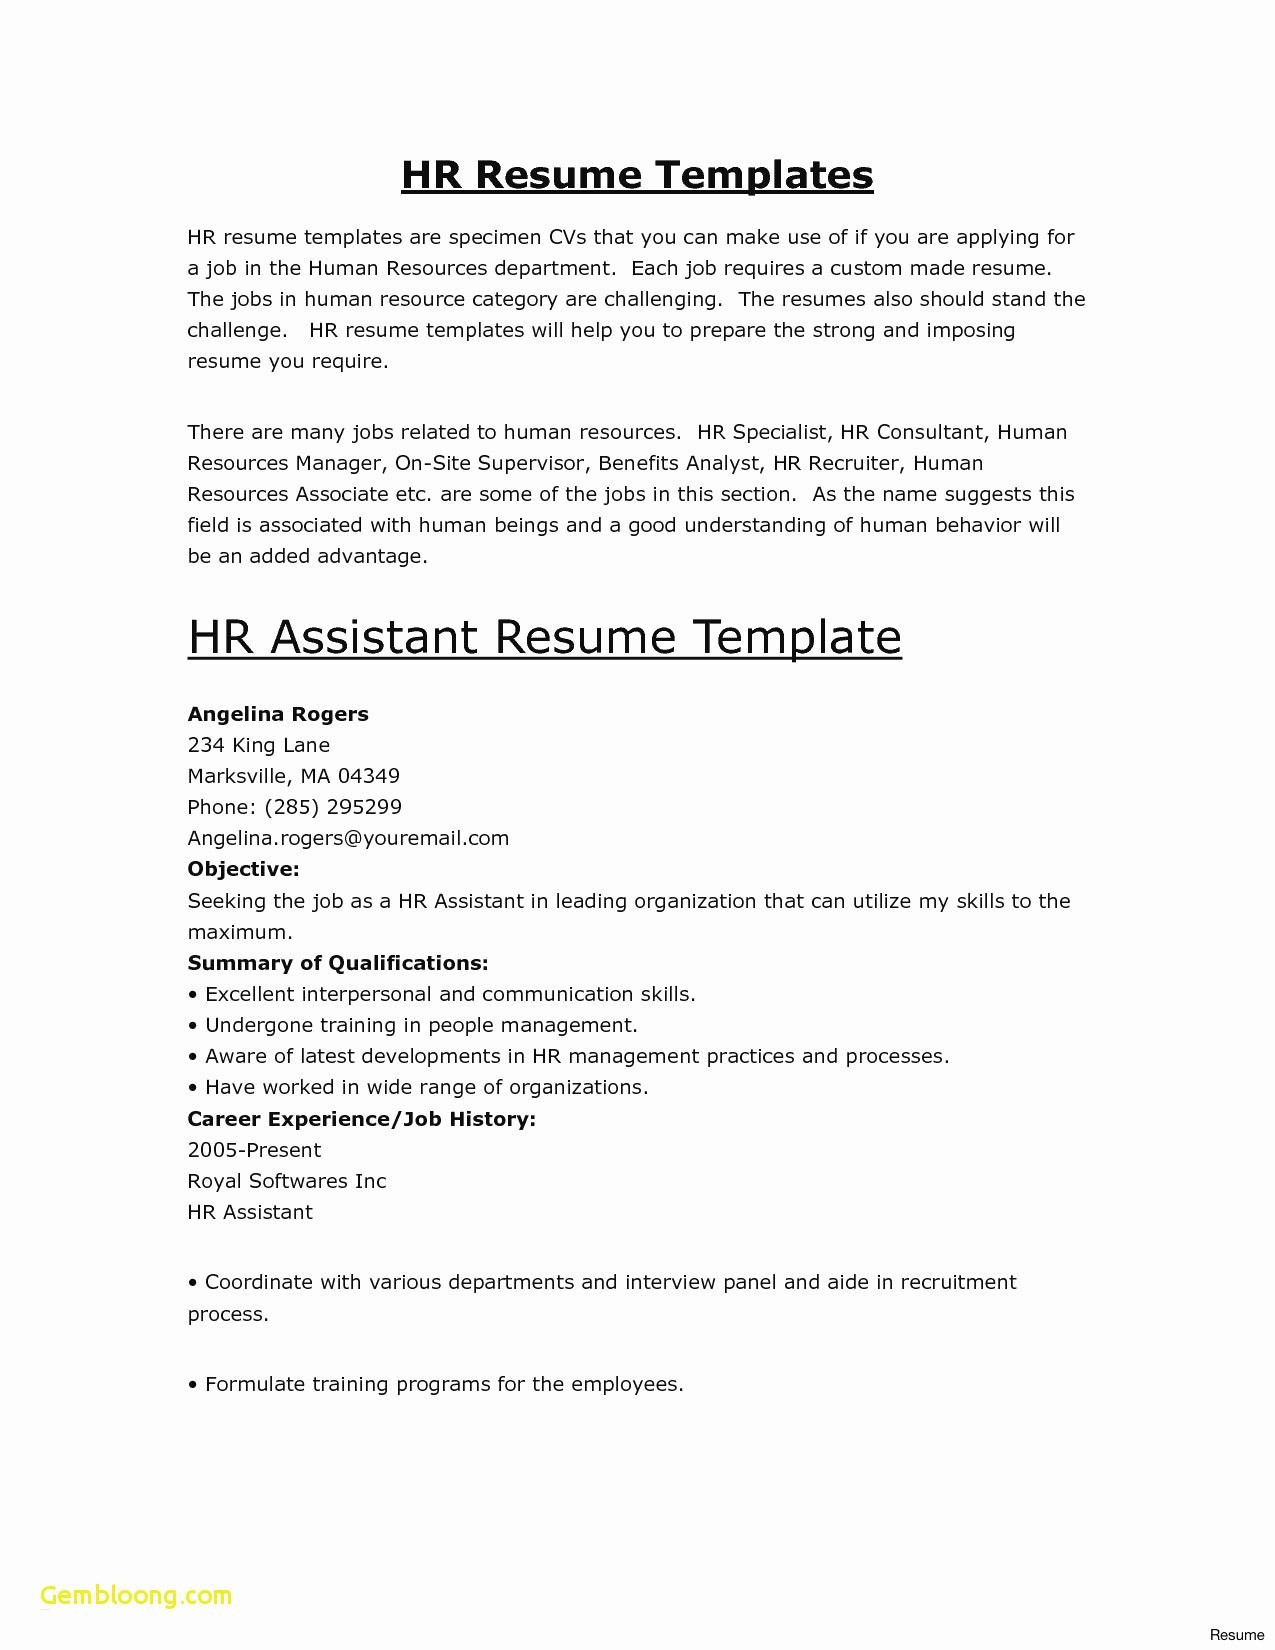 Perfect Resume Template - Graphic Design Job Description Resume Fresh Best Resumes Ever